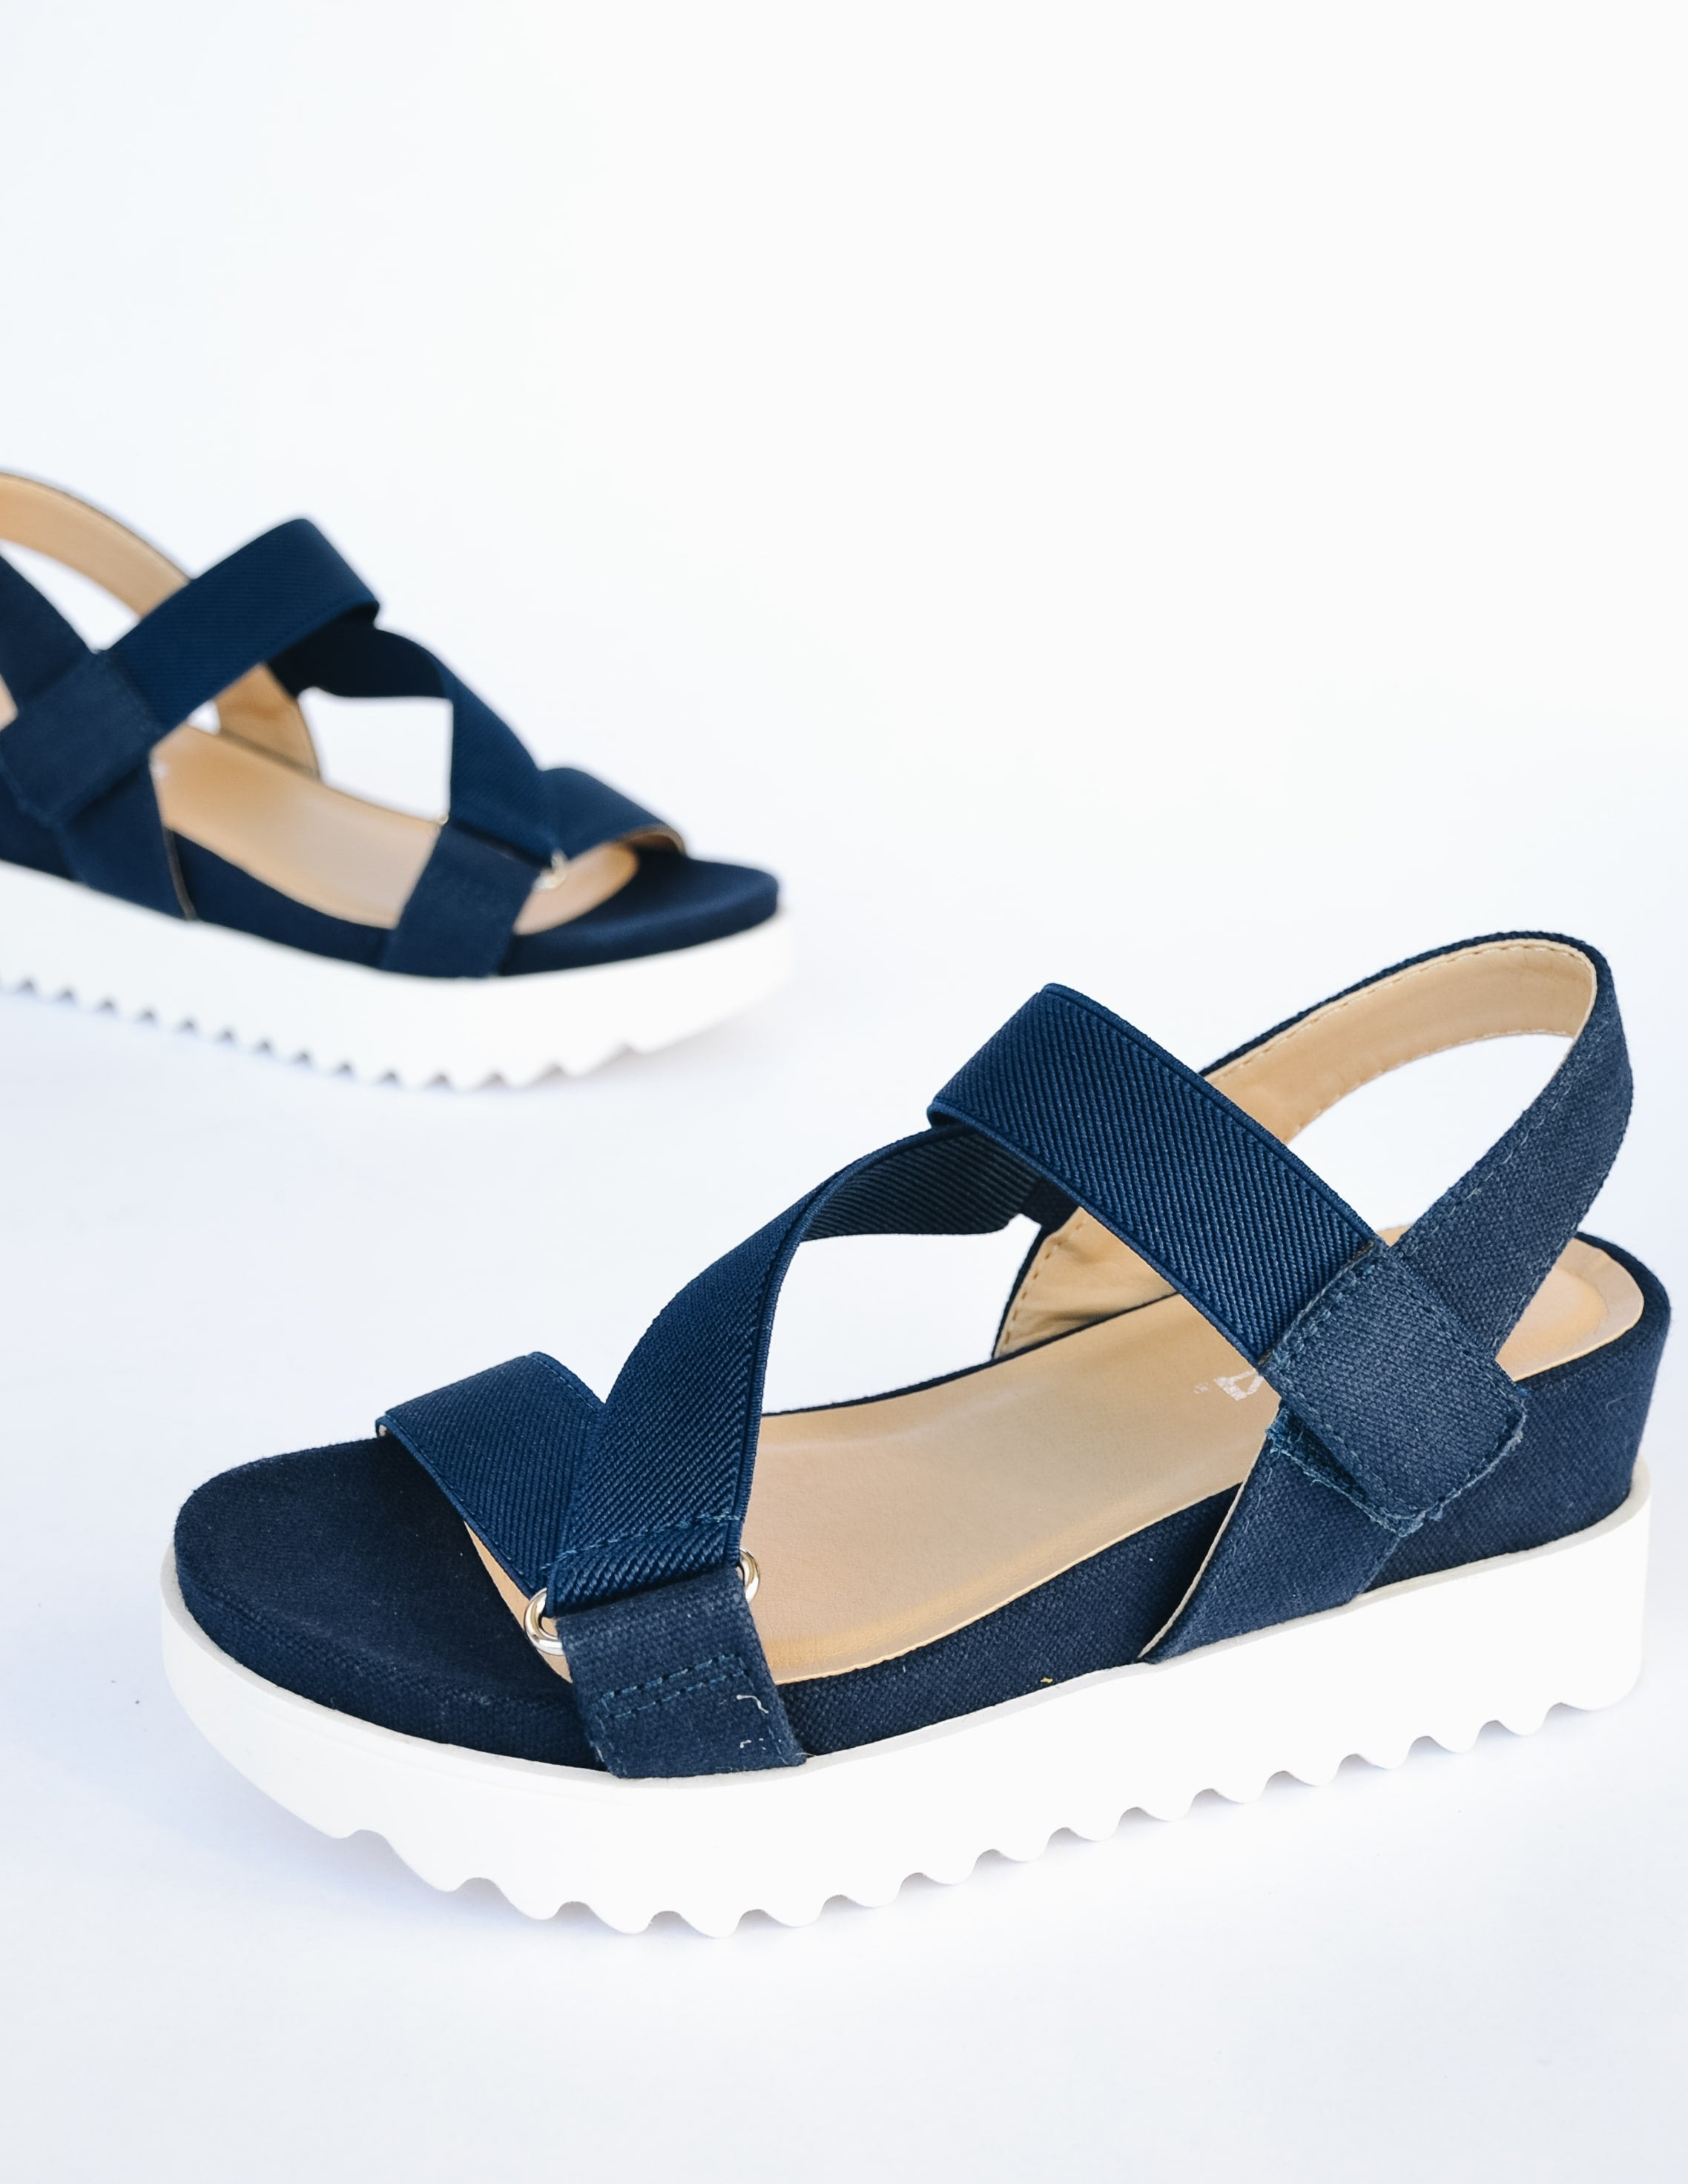 Wedge sandal with navy blue straps, tan insole, and white platform sole